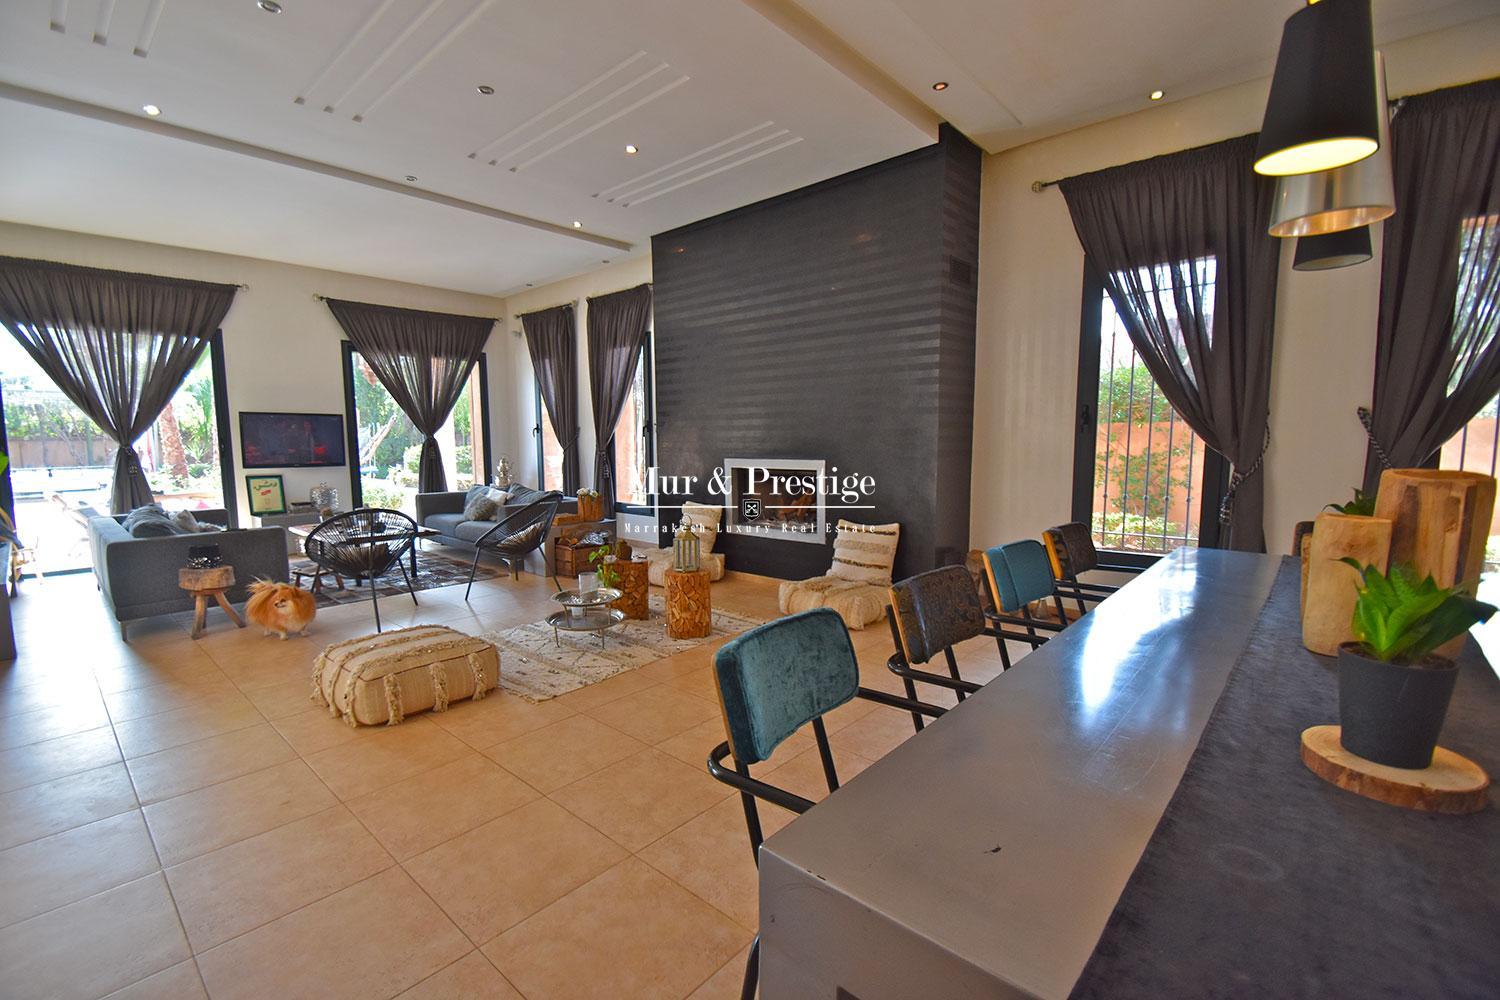 Villa contemporaine a vendre a Marrakech